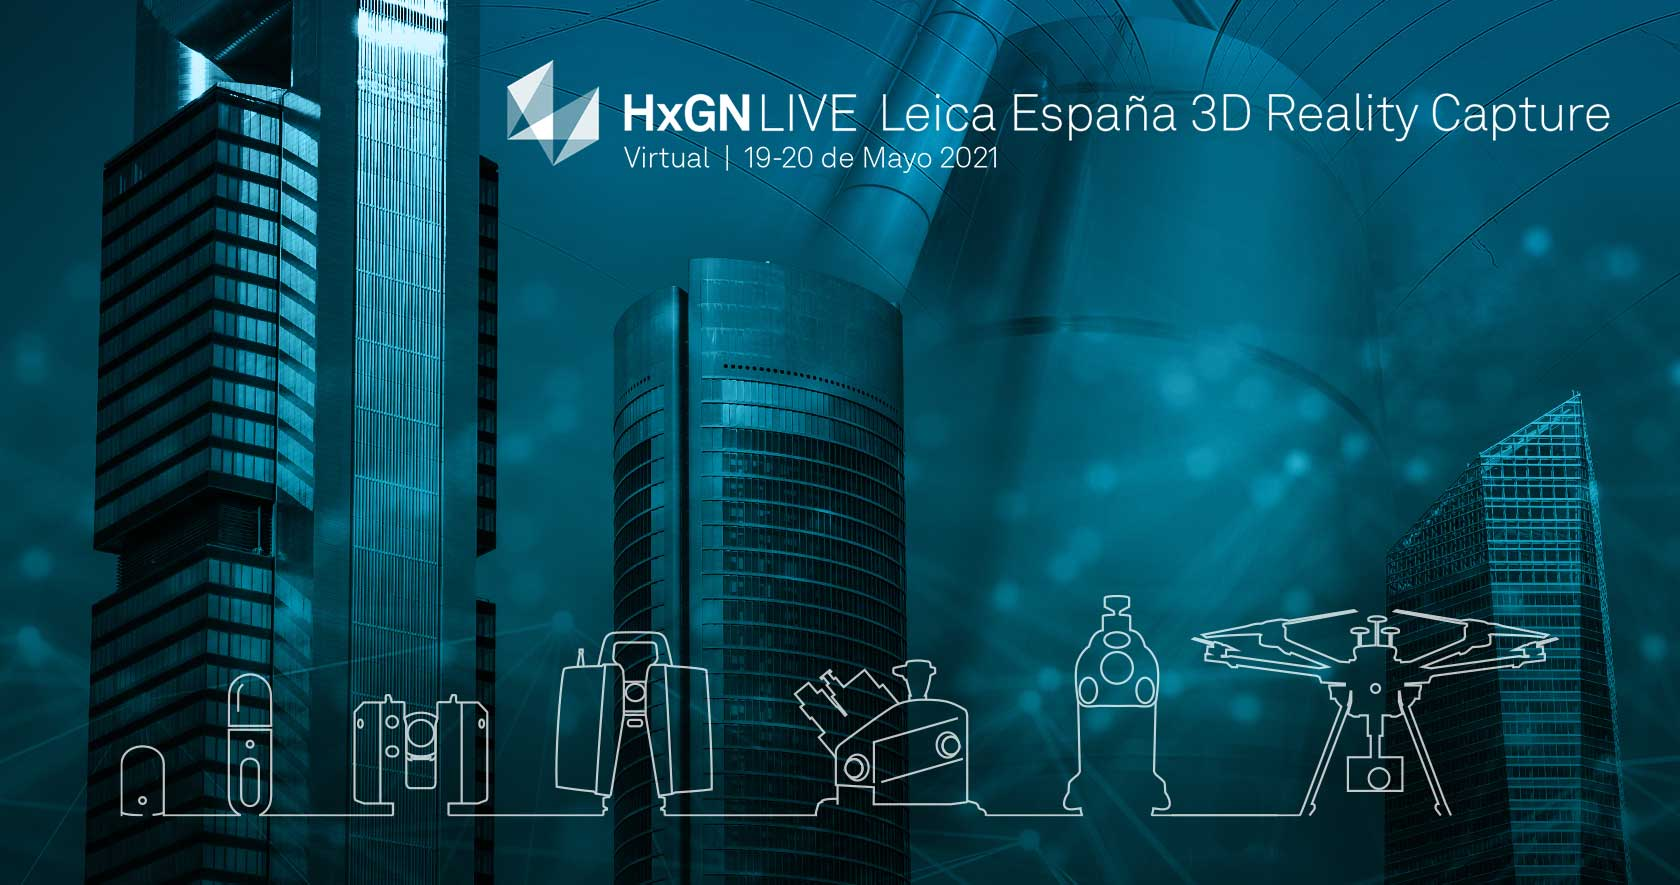 HxGN LIVE Leica Espana 3D Reality Capture